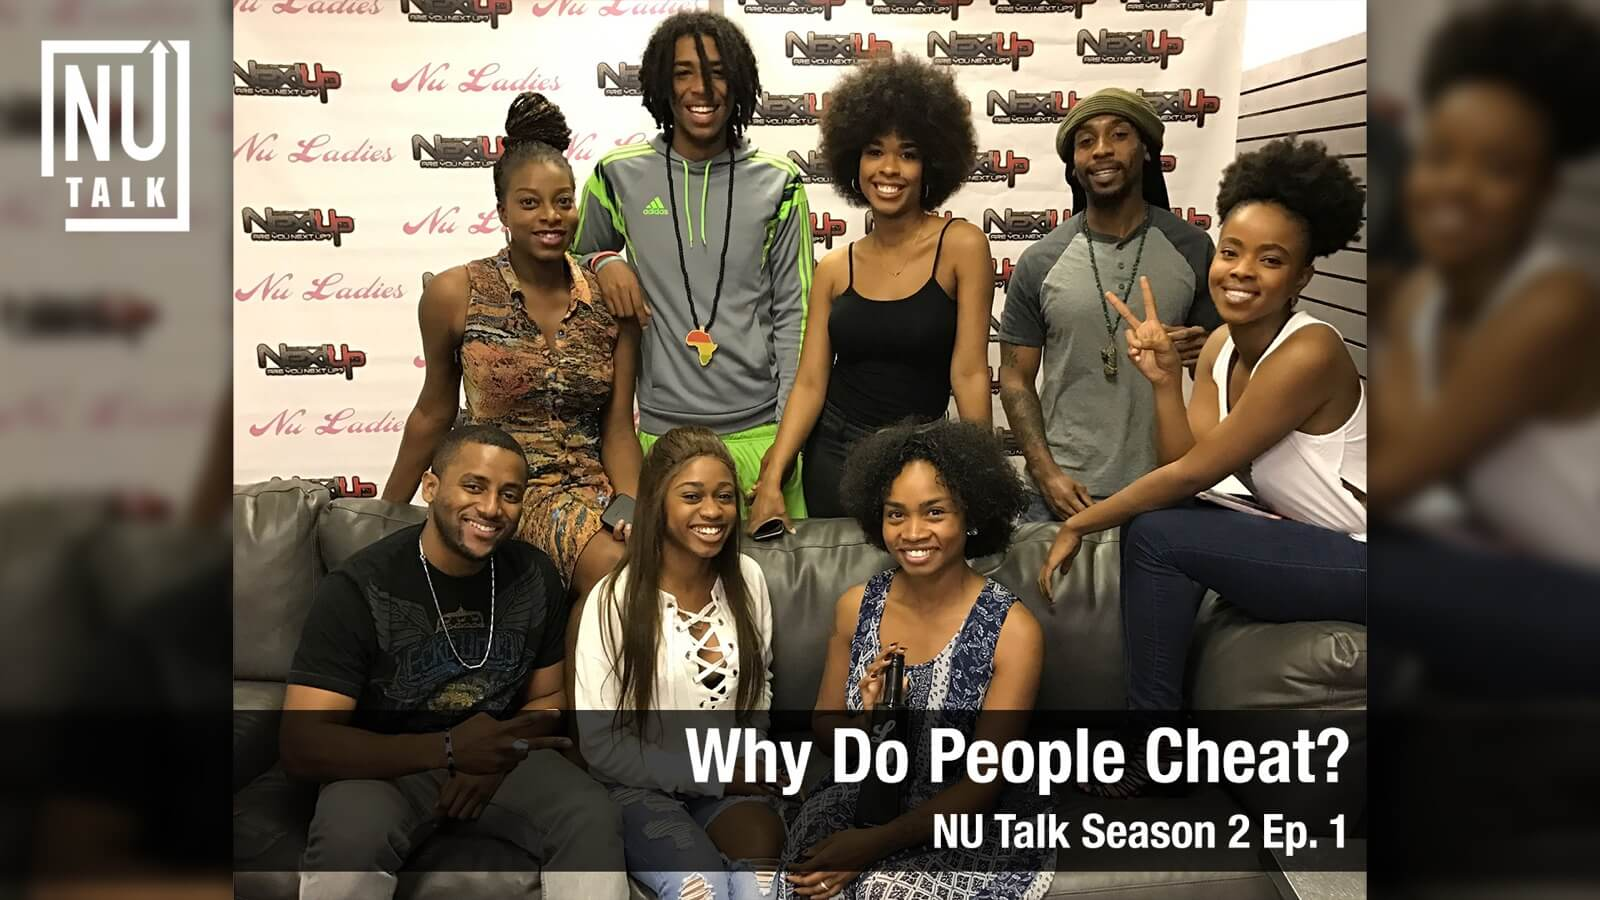 NU Talk Season 2 Episode 1 Cast